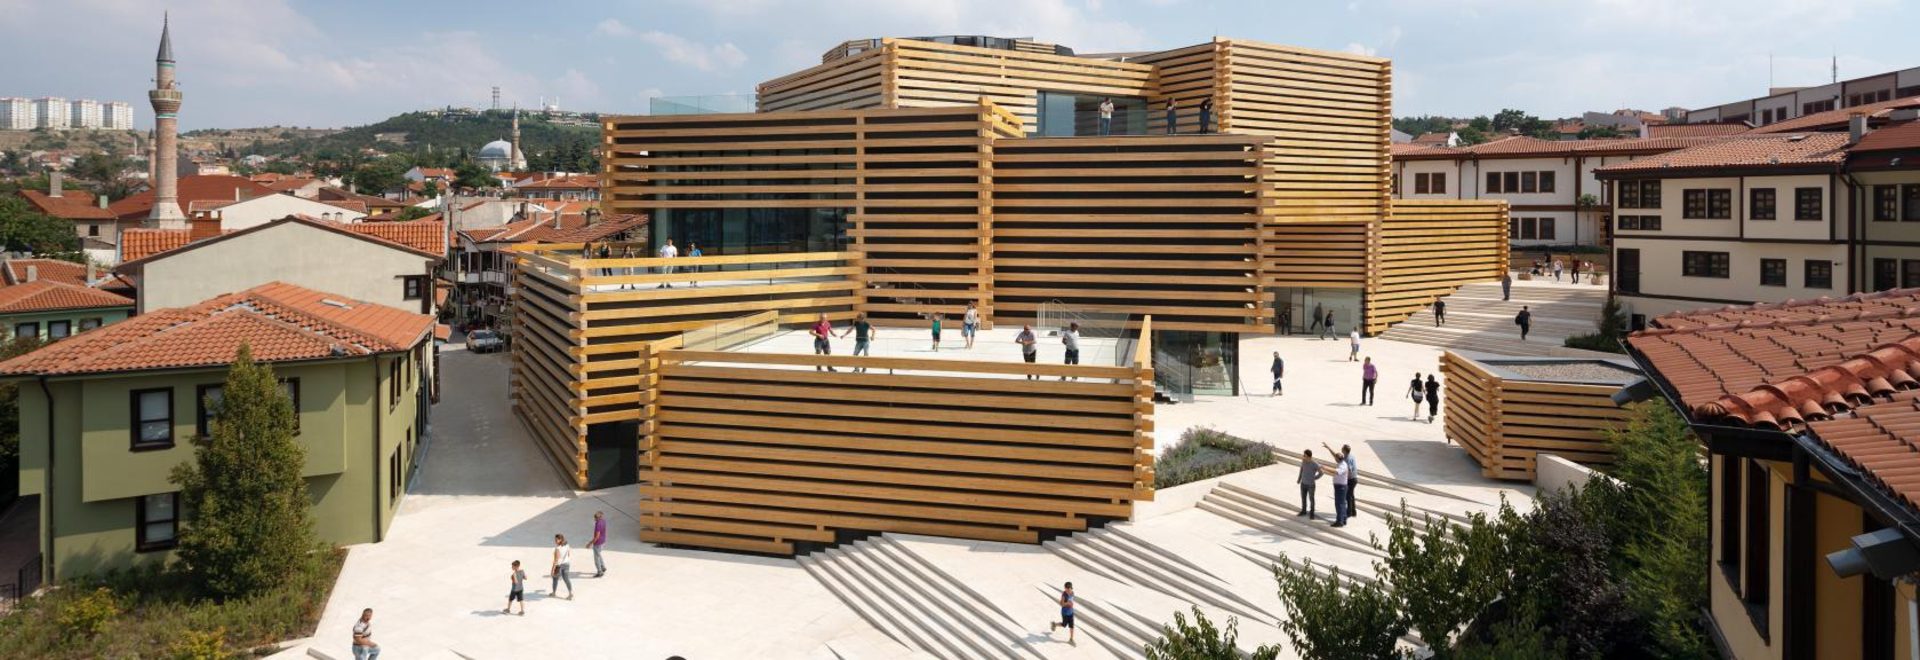 Kengo Kuma's stacked timber structure for the OMM museum in Turkey opens to the public this September. Photography: NAARO